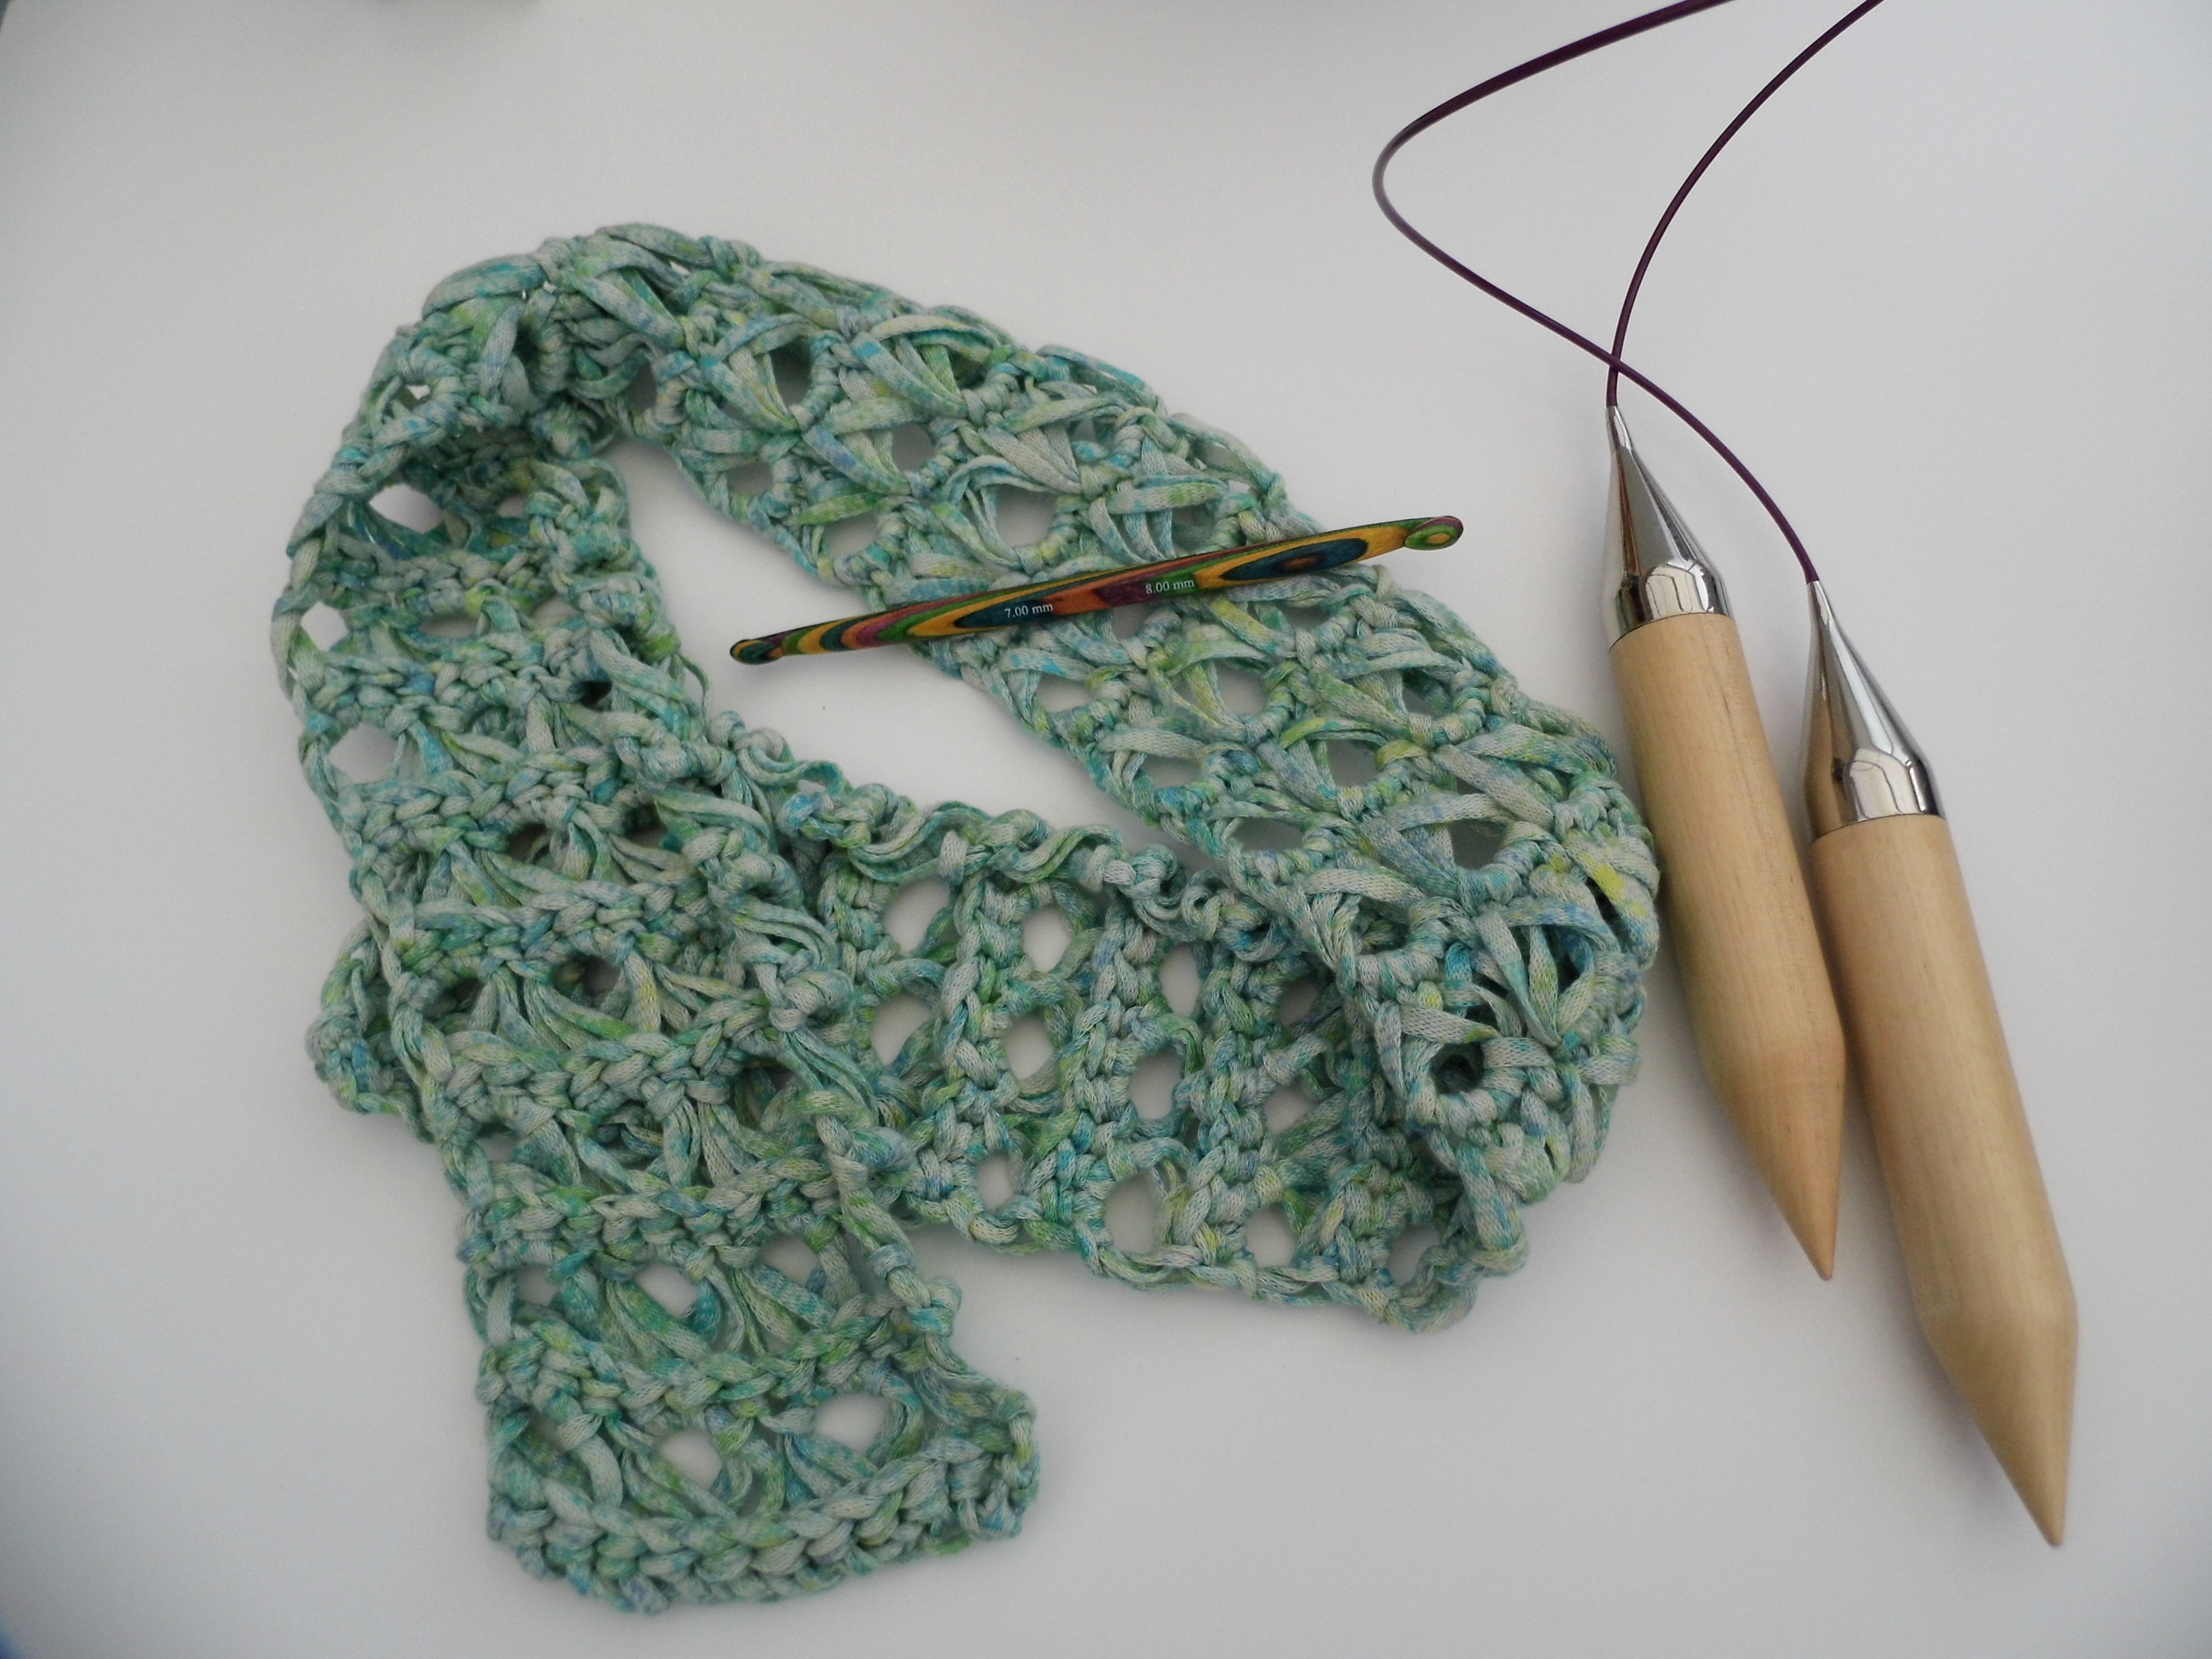 Quick broomstick lace summer scarf broomstick lace summer quick broomstick lace summer scarf lace crochet patternsscarf bankloansurffo Image collections